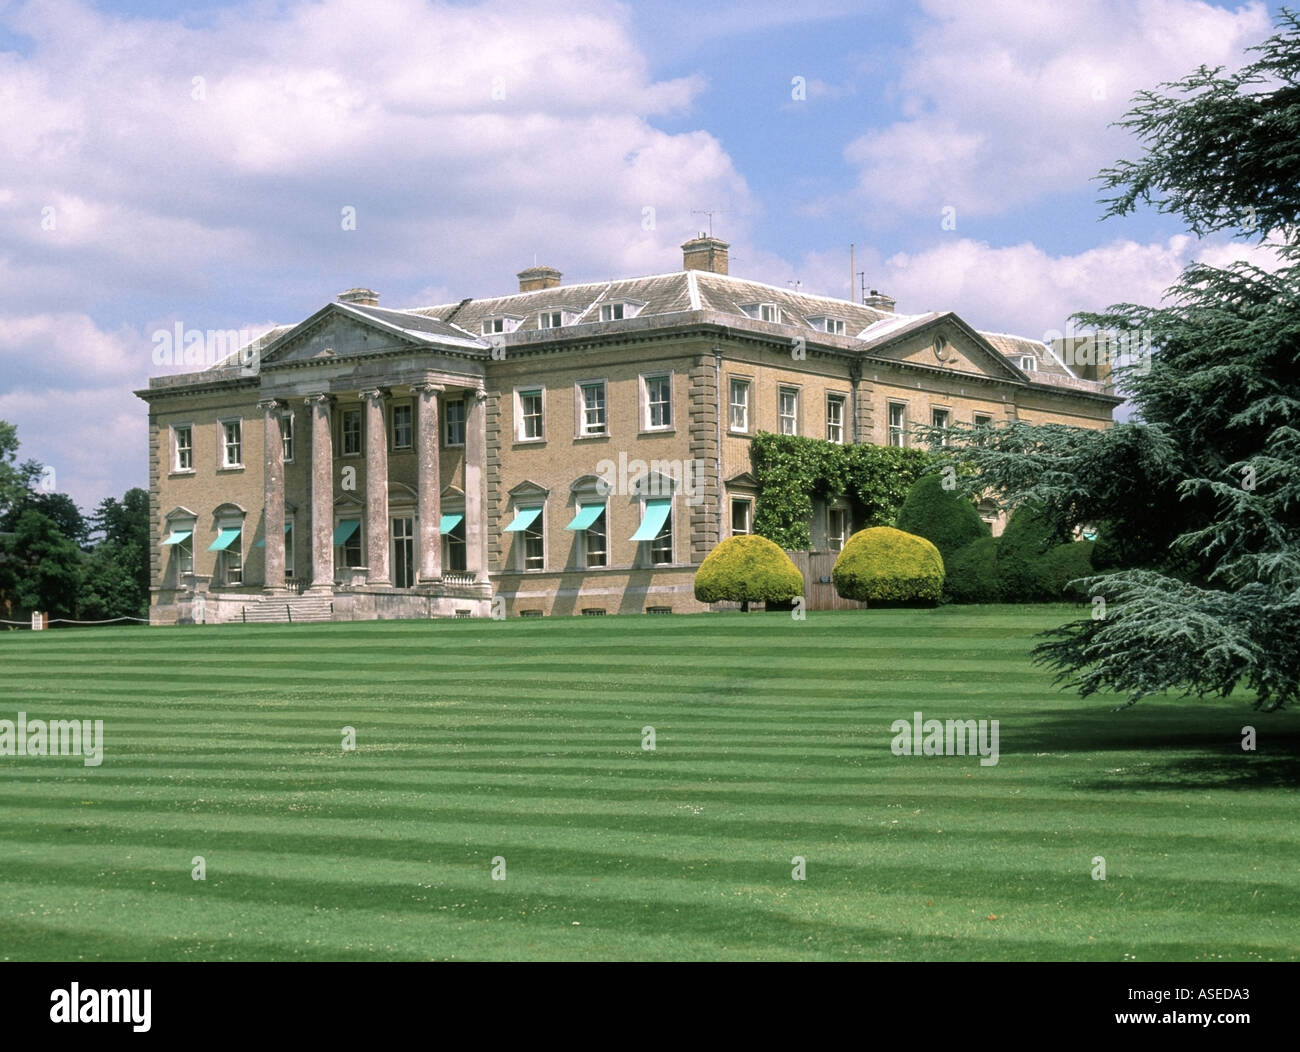 Broadlands homes to Lord Mountbatten and previously country residence of Lord Palmerston now the home of Lord Romsey - Stock Image